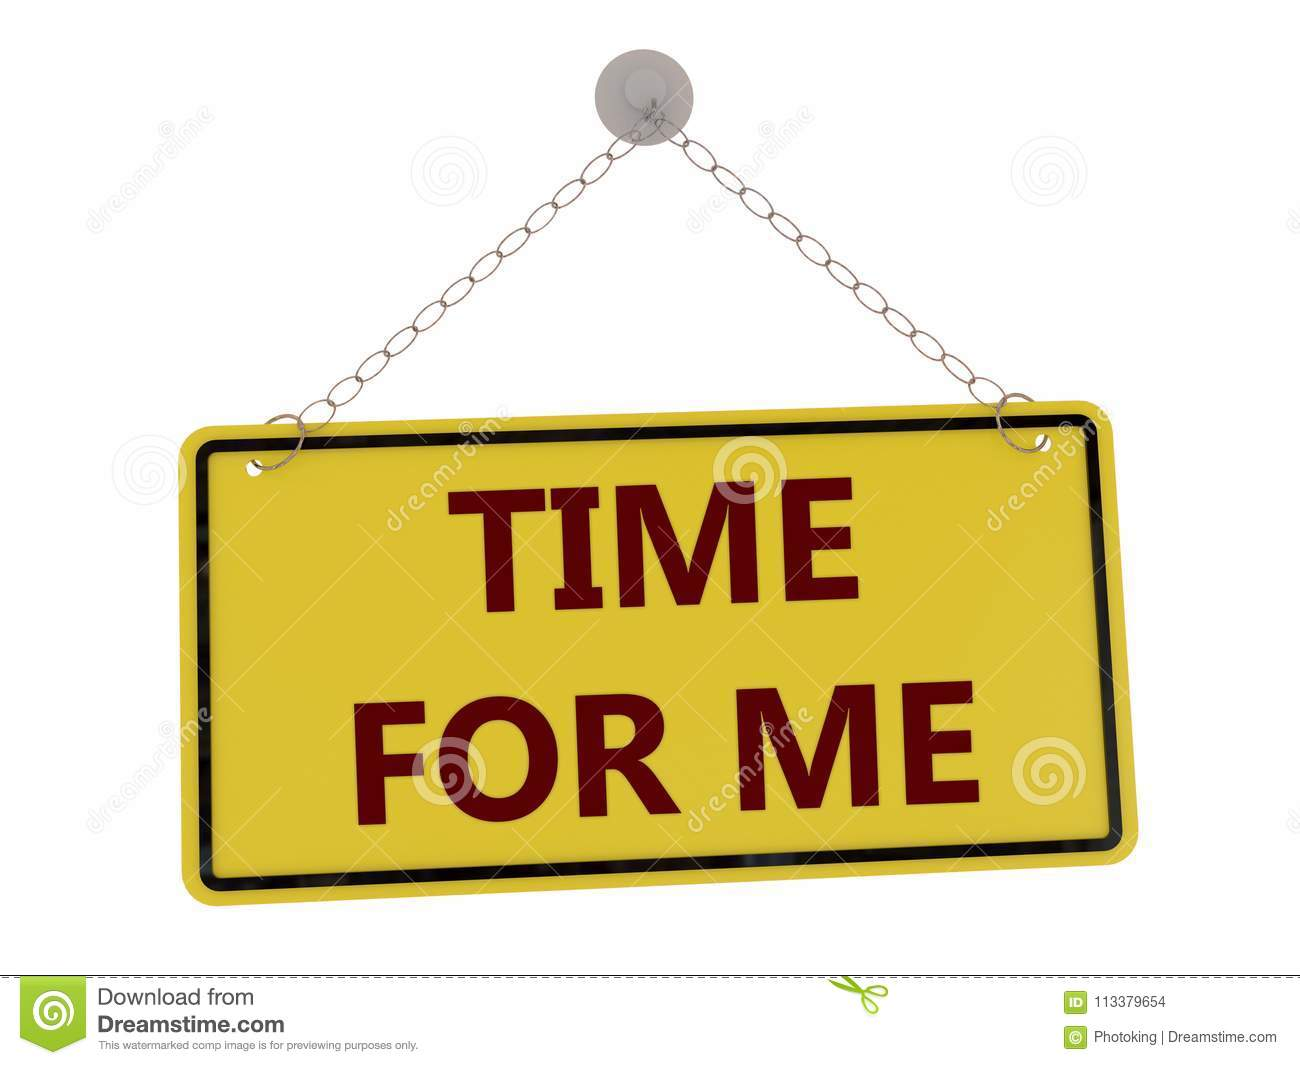 Time for me sign